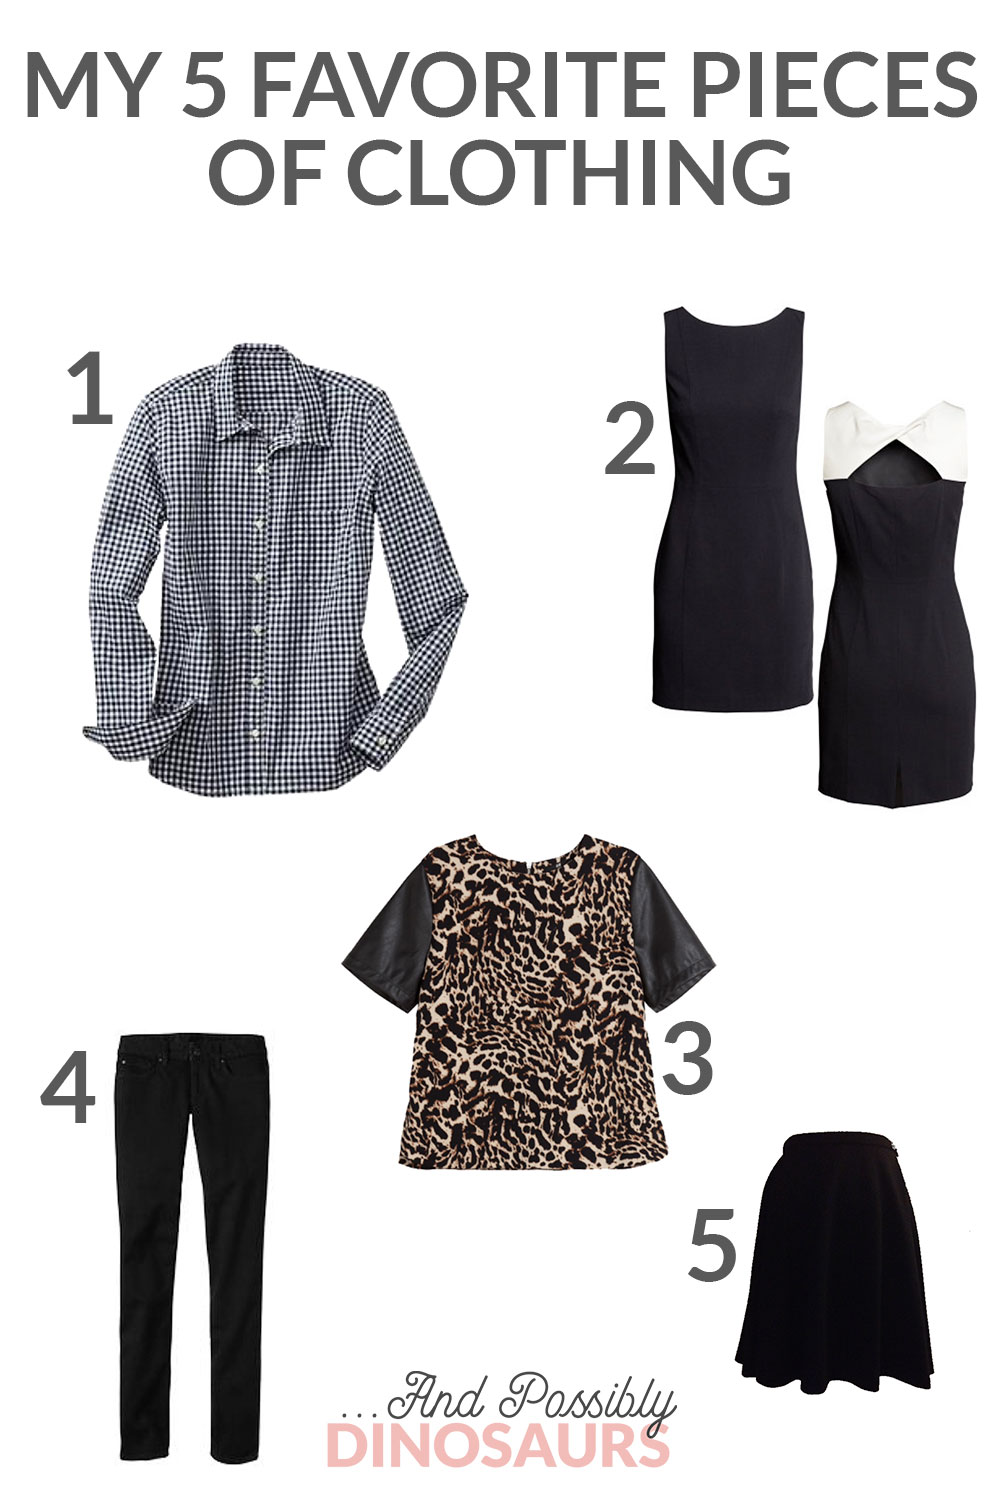 My 5 Favorite Pieces of Clothing